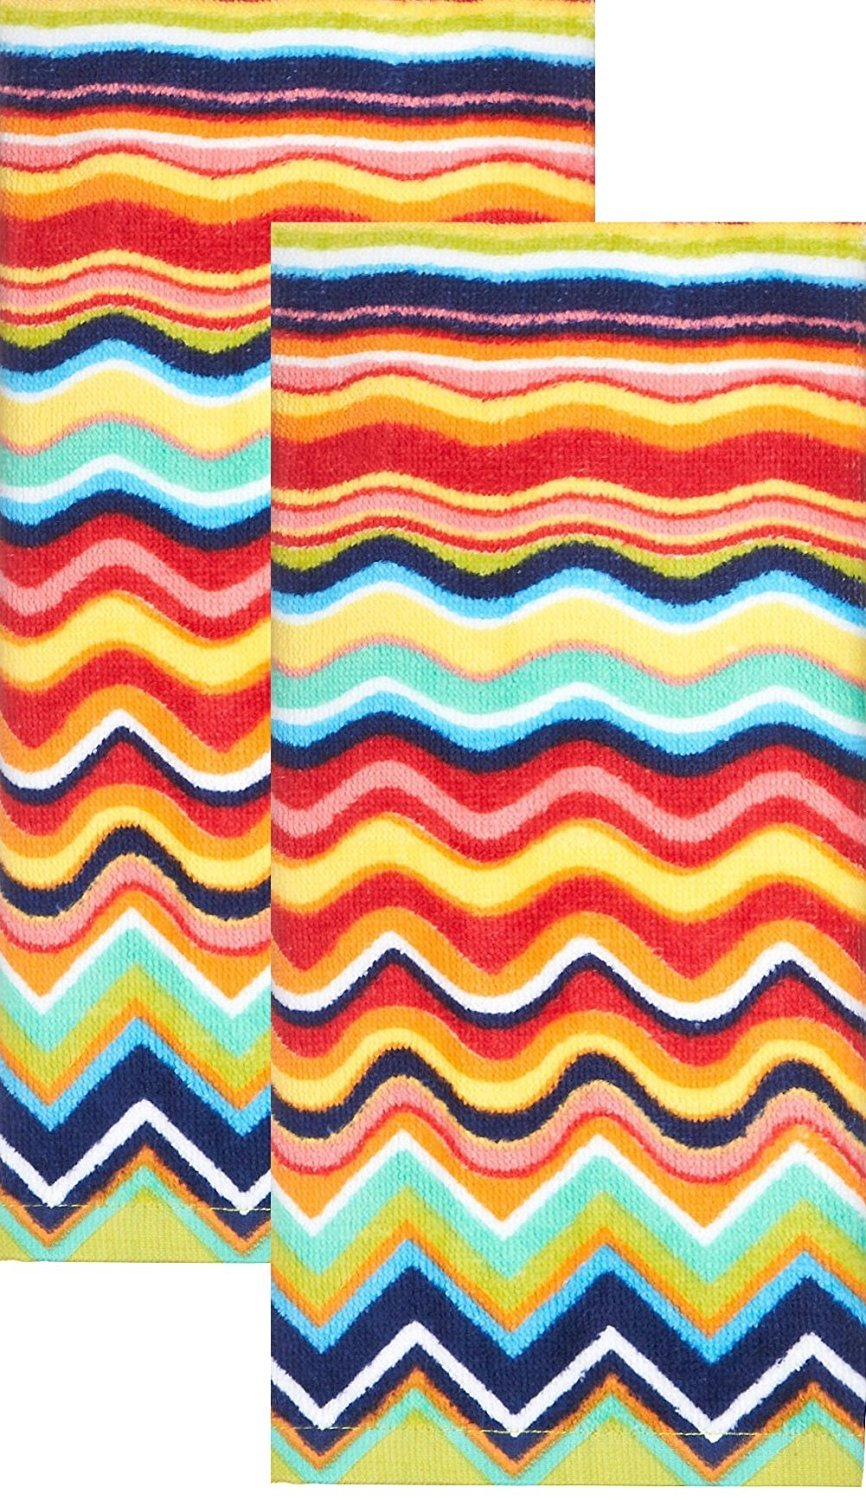 Fiesta Multicolor Zig Zag Terry Kitchen Towel, Set of 2